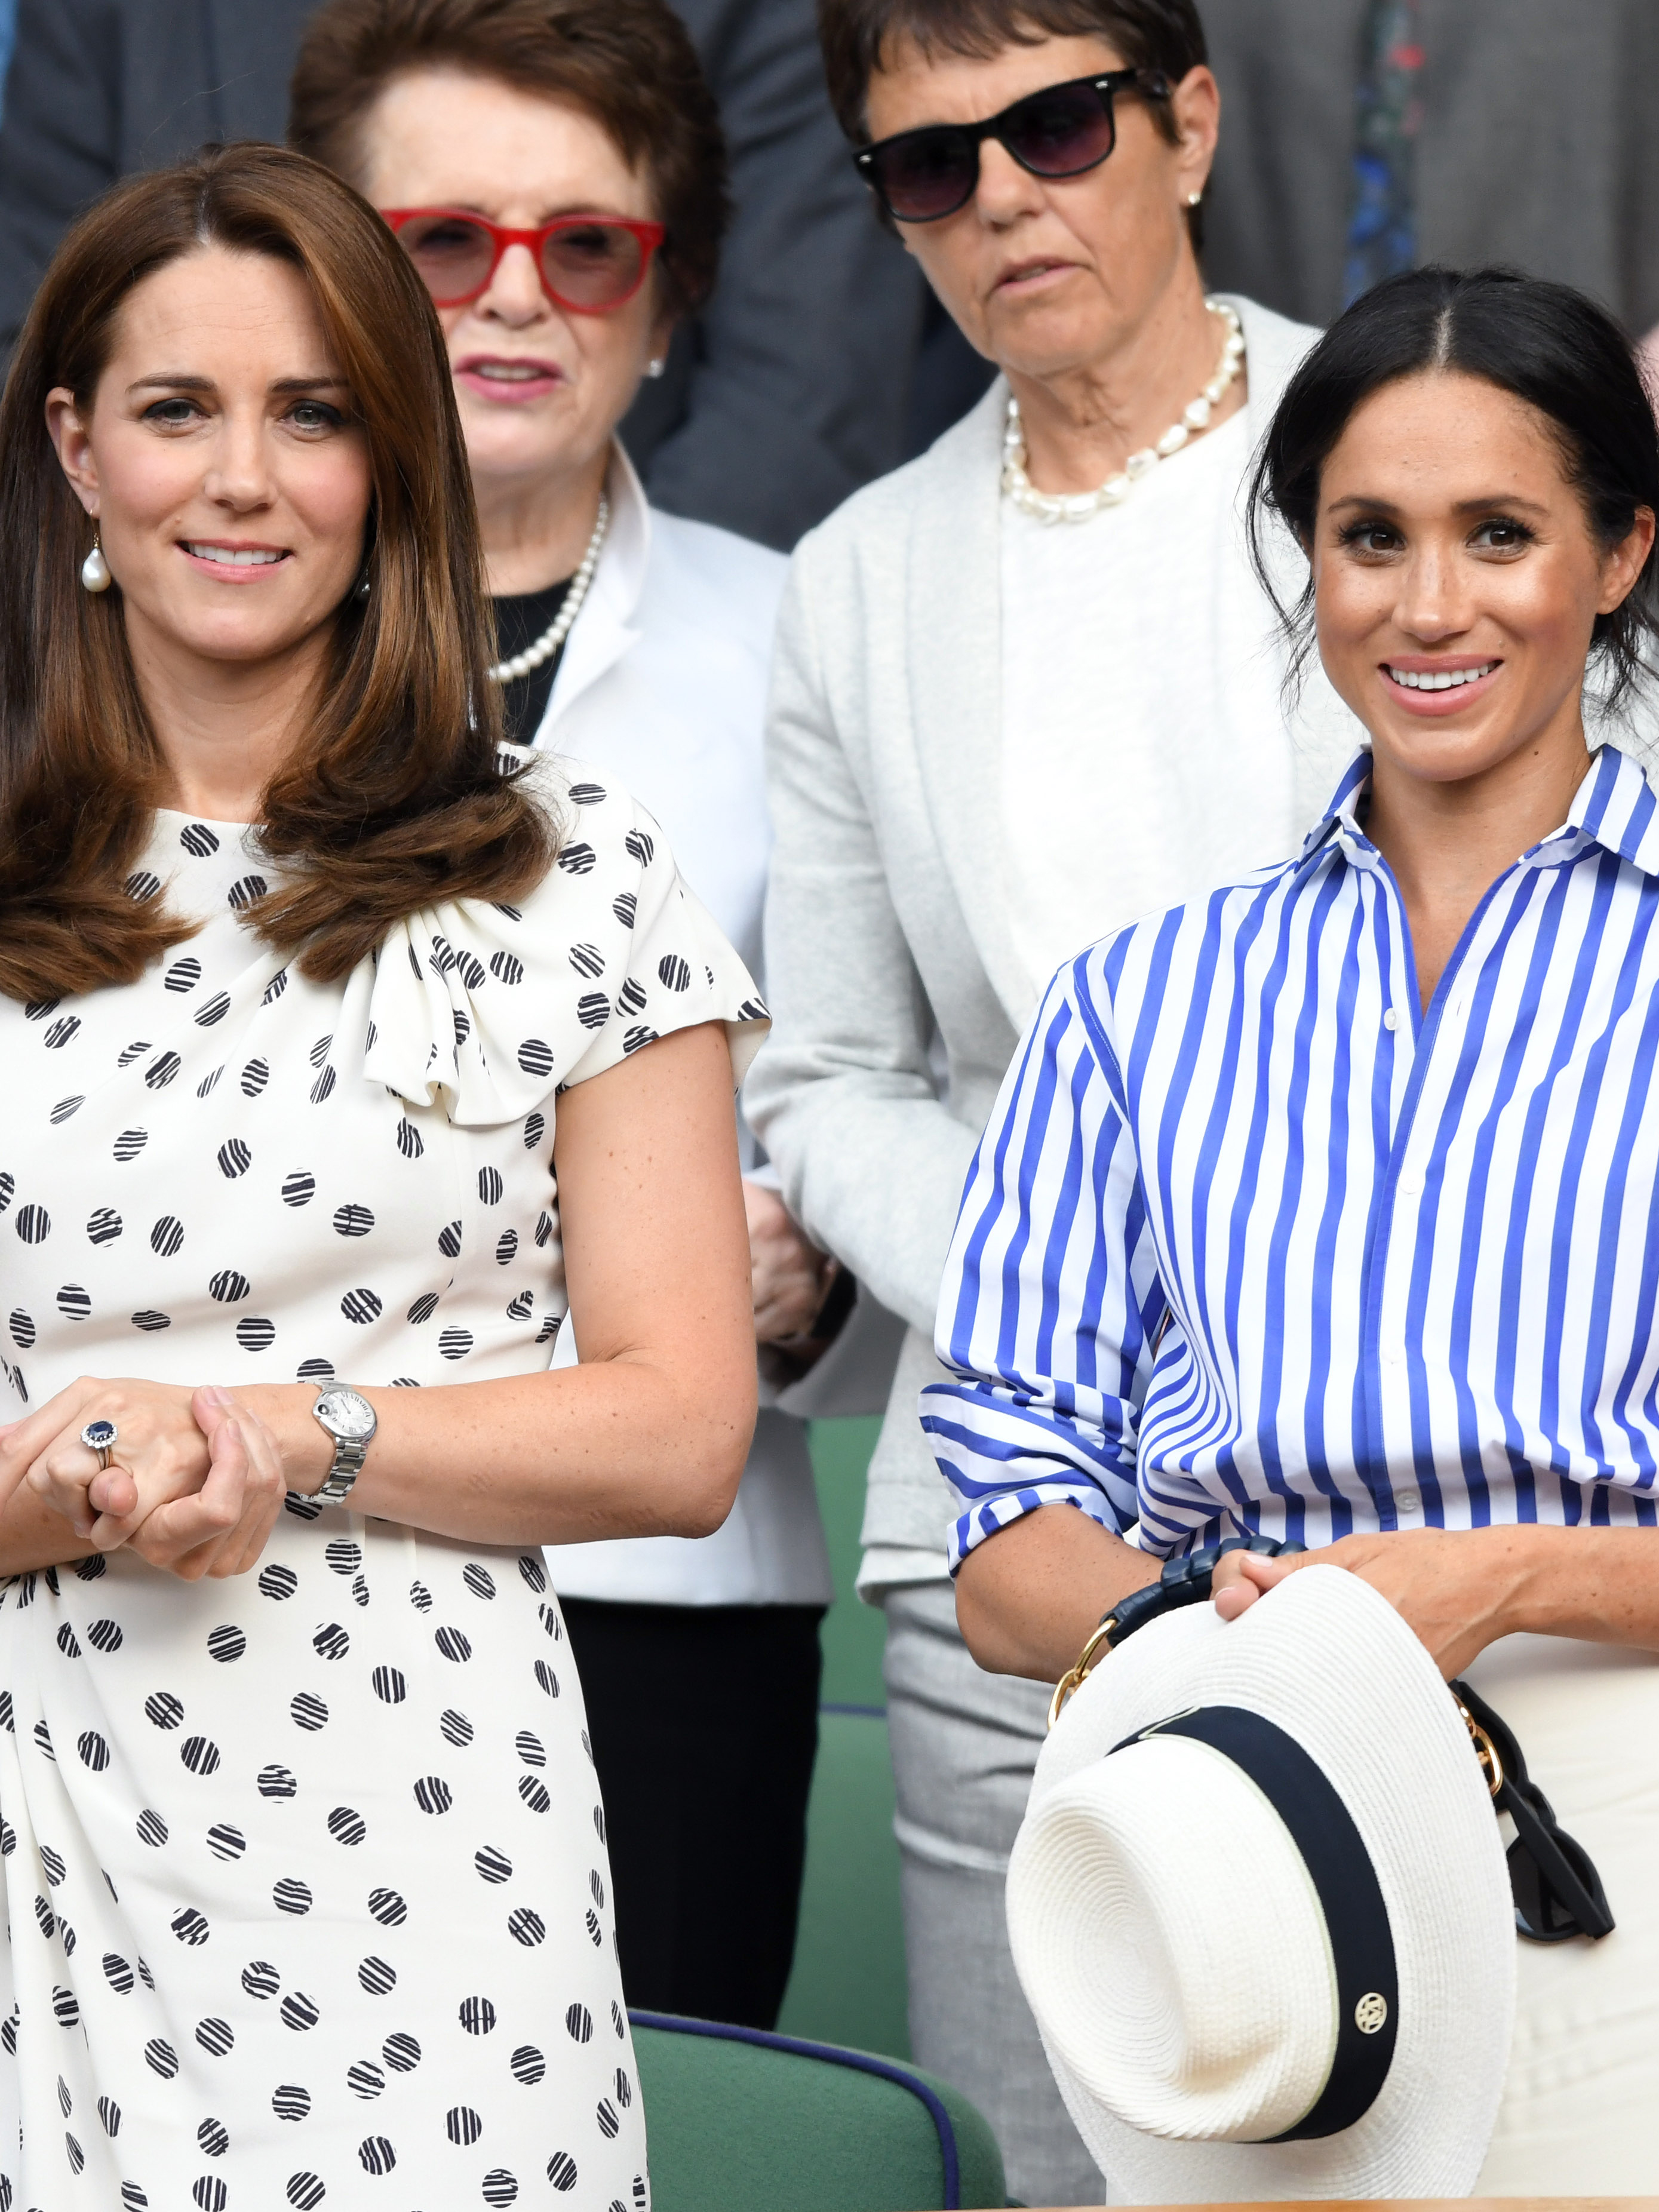 Meghan Markle and Kate Middleton to attend Wimbledon final together to see Serena Williams 4